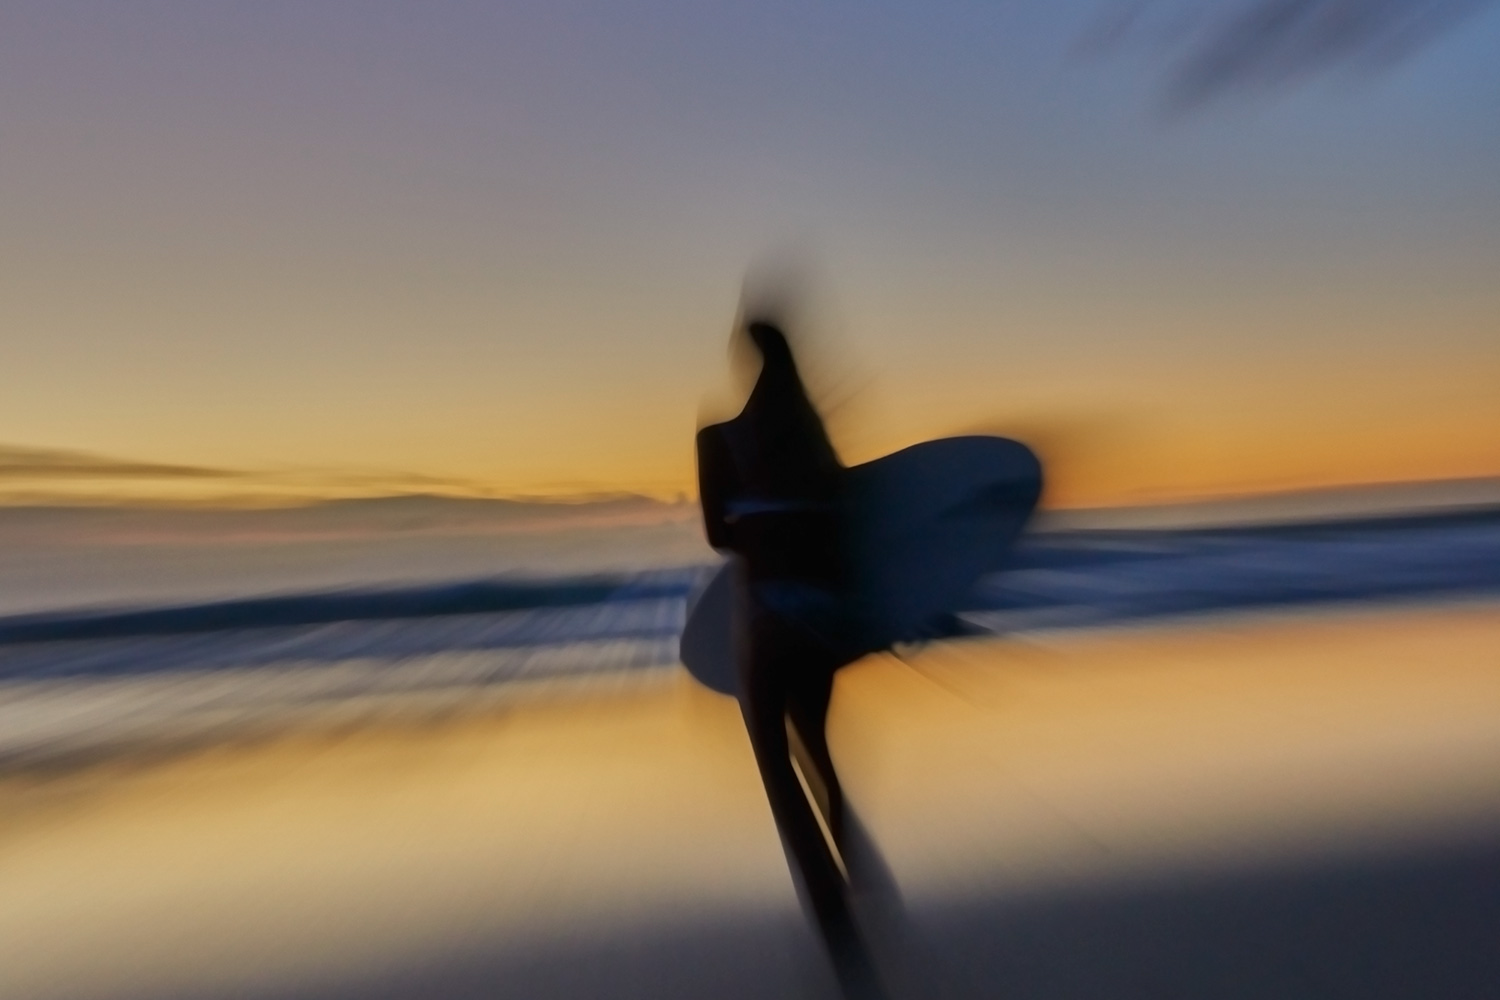 Surfer Girl c-print under acrylic glass, limited edition of 7 100 x 150 cm